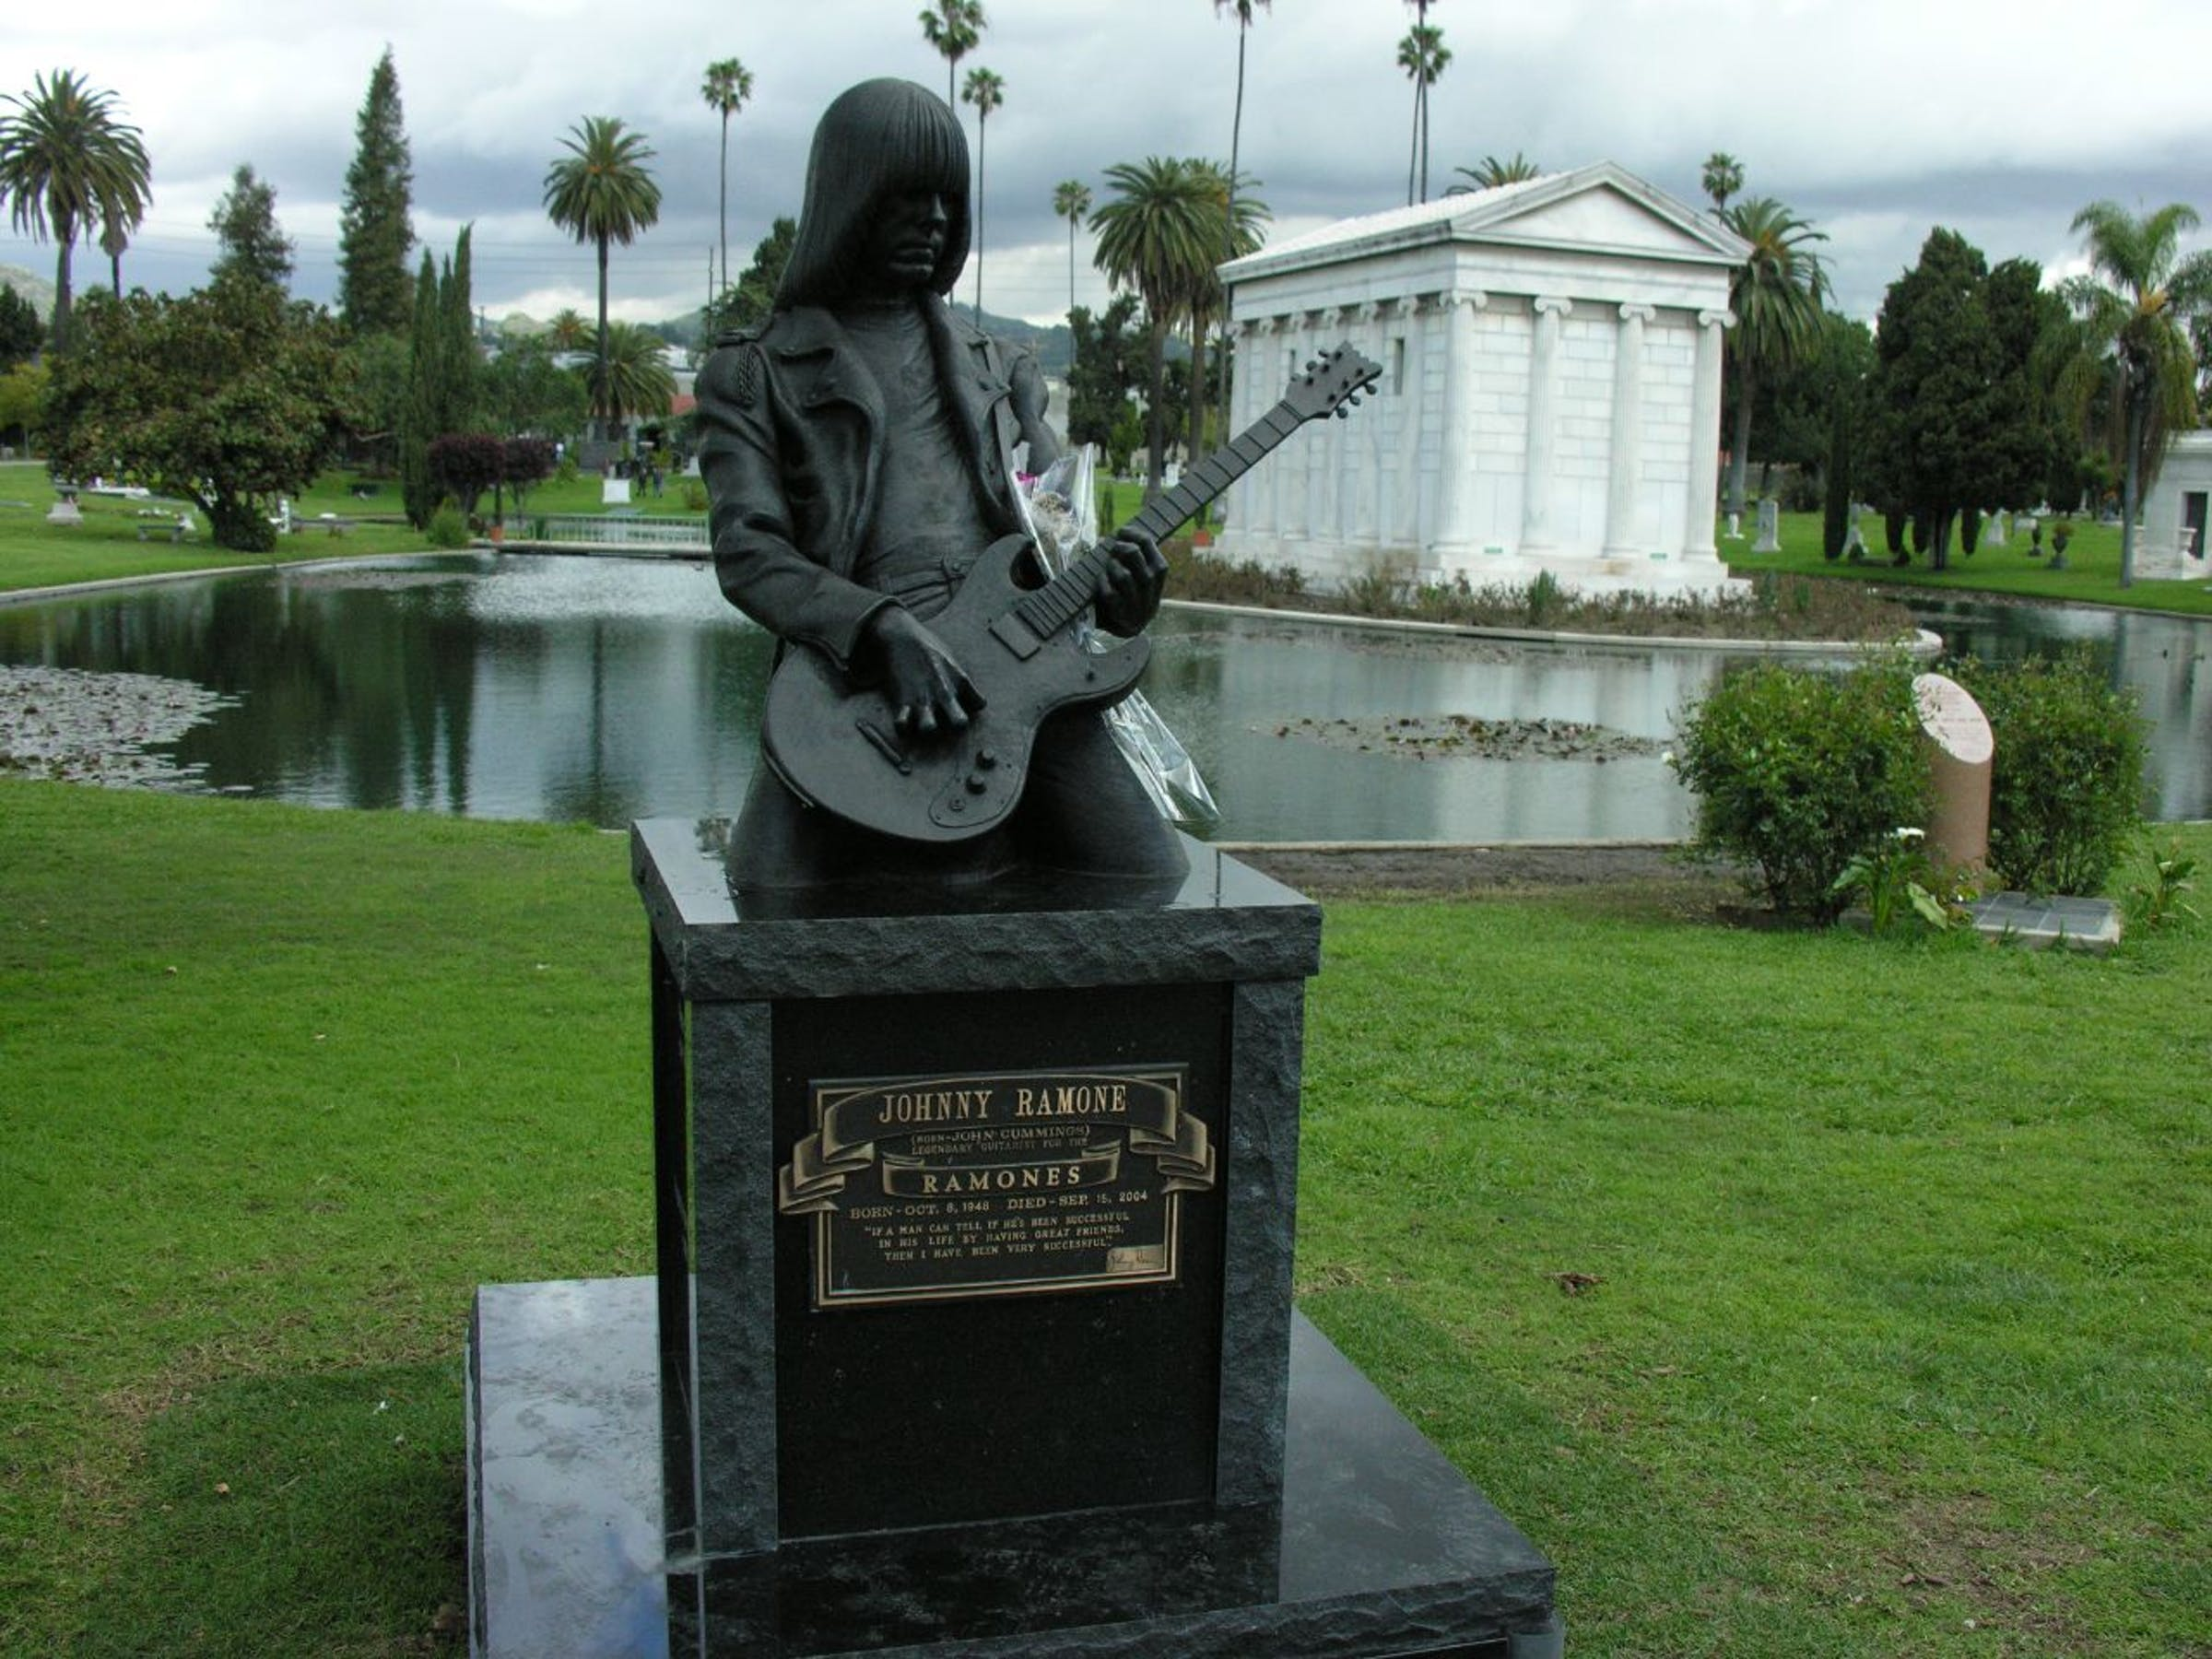 Johnny Ramone - Hollywood Forever Cemetary